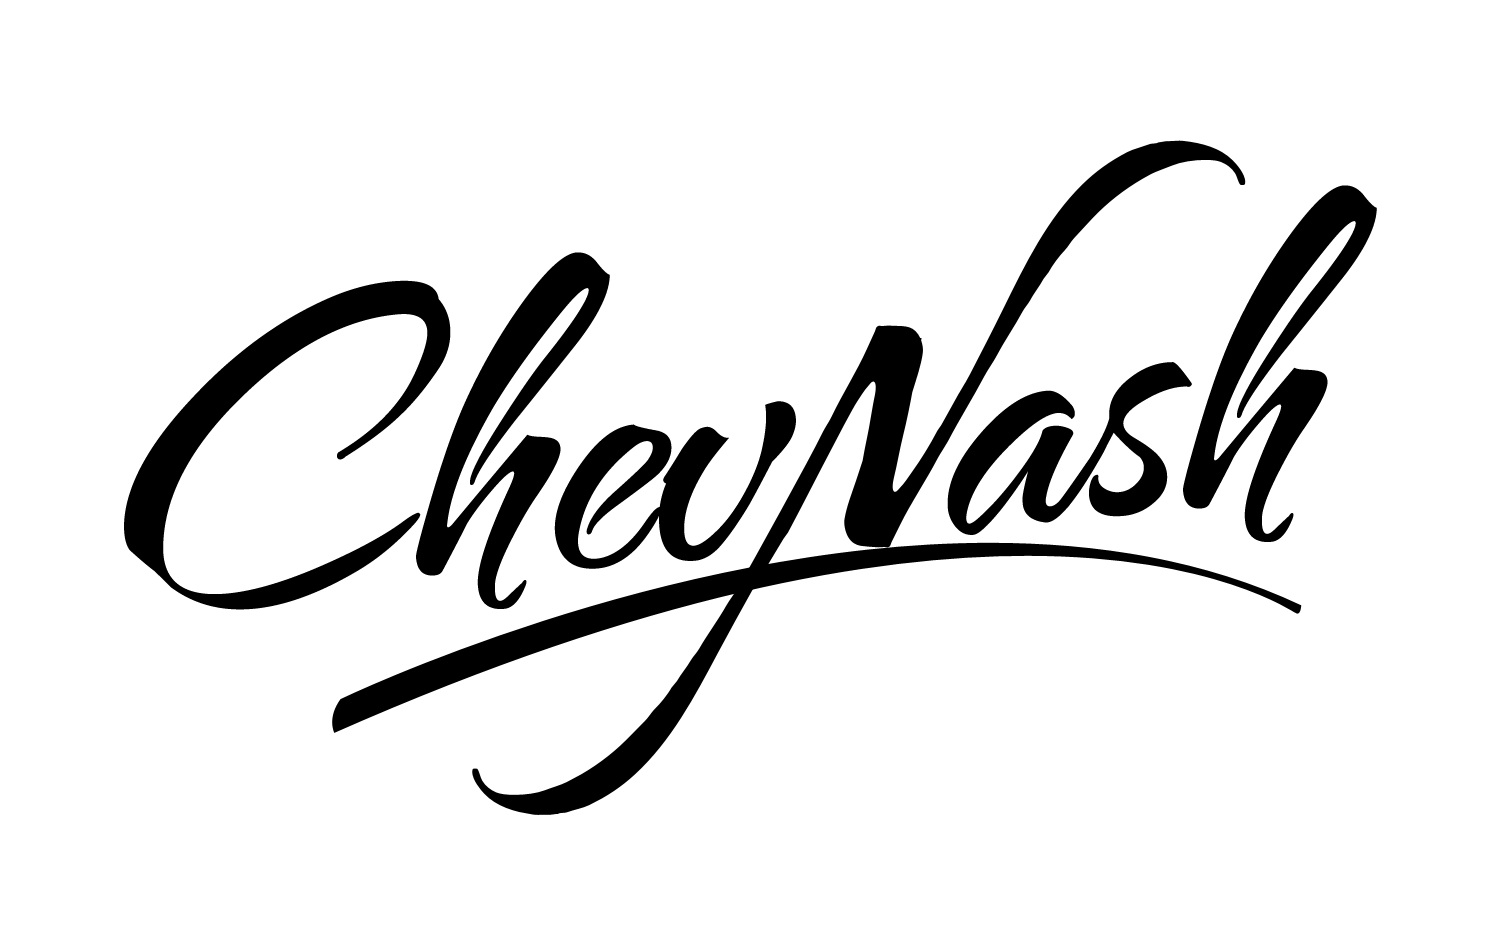 ChevNash